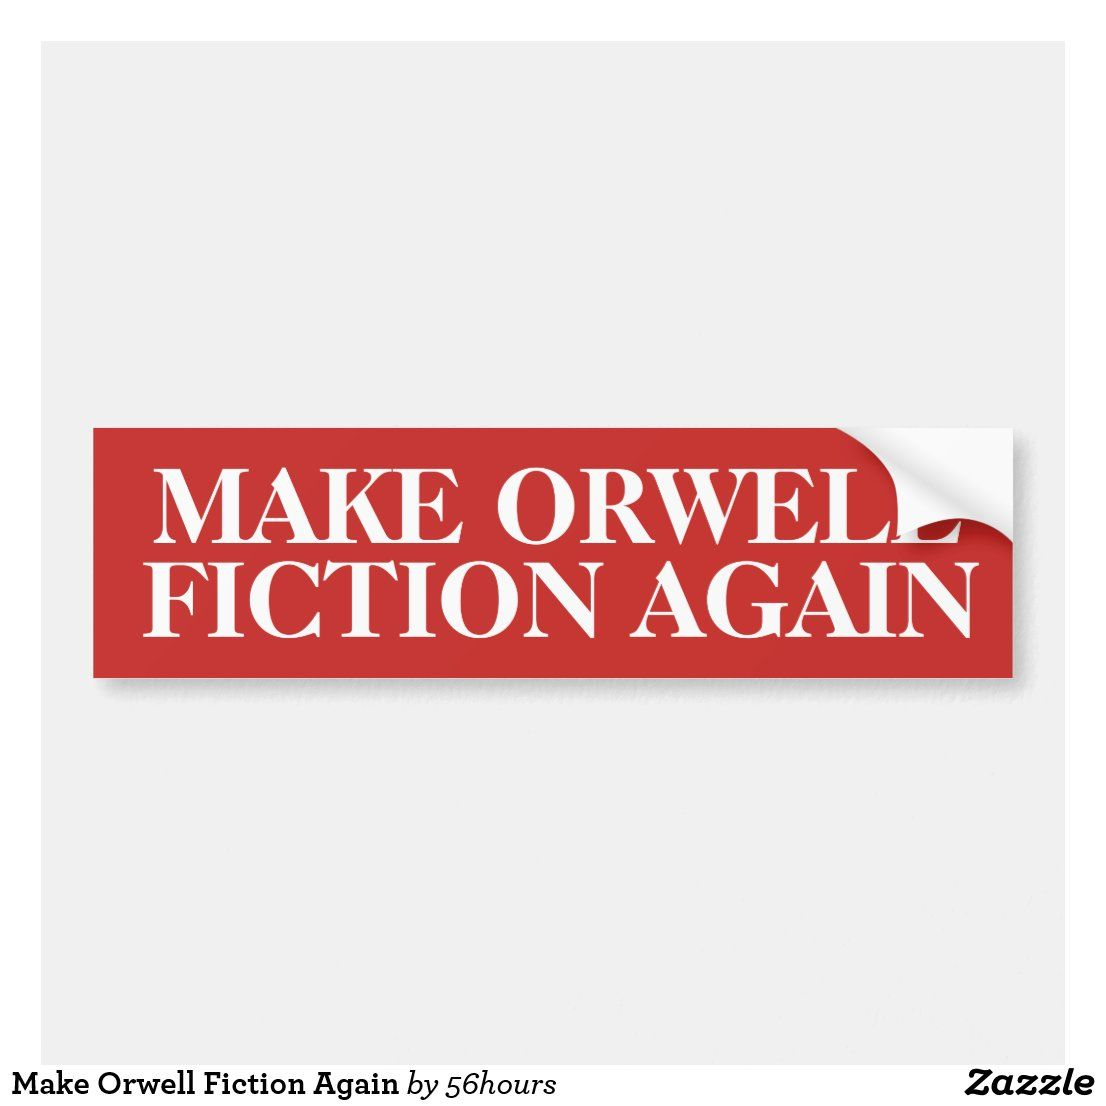 Make Orwell Fiction Again Bumper Sticker Zazzle Com Bumper Stickers Custom Holiday Card Strong Adhesive [ 1106 x 1106 Pixel ]